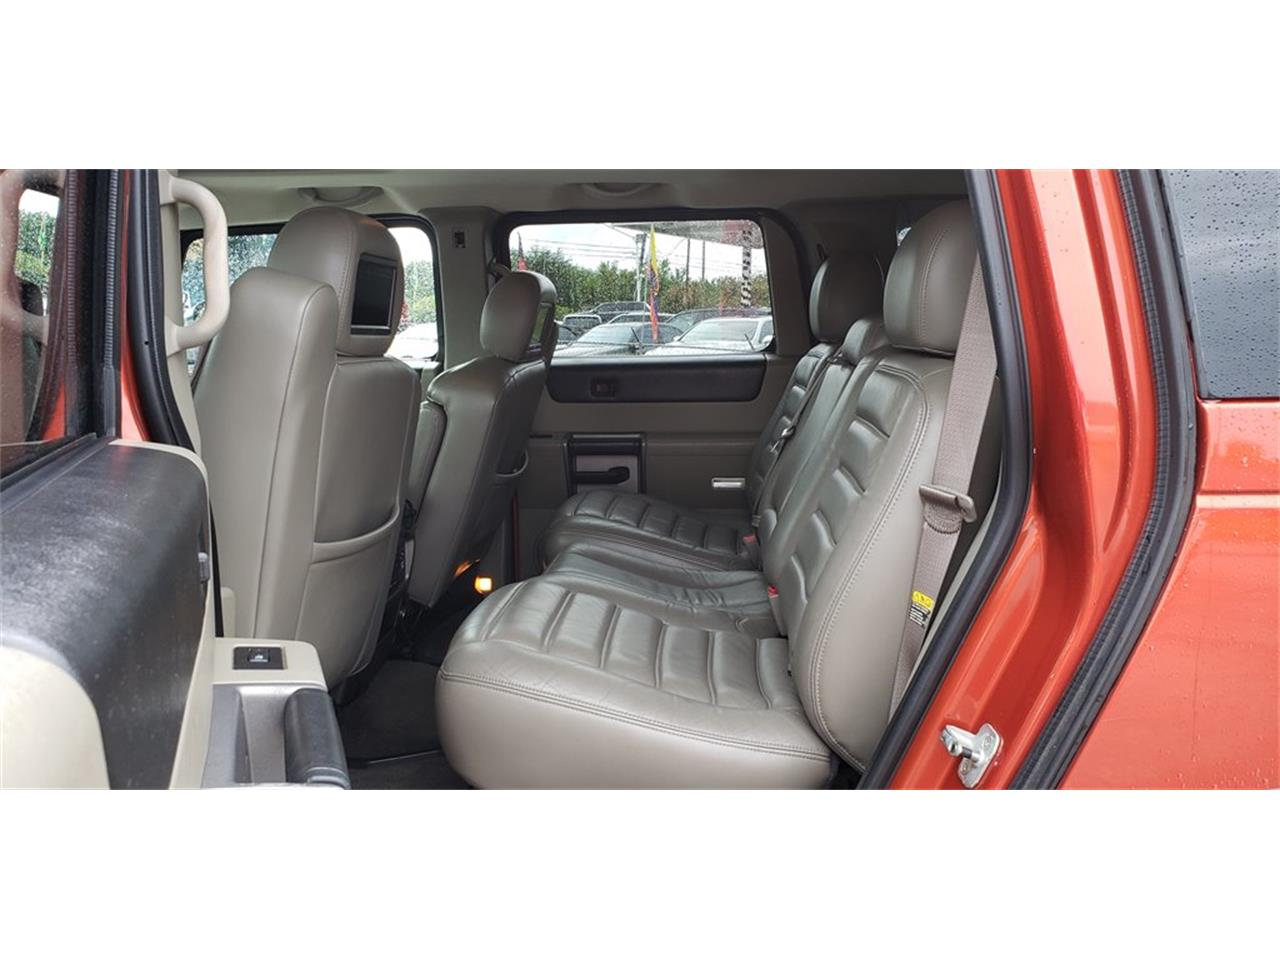 2004 Hummer H2 (CC-1243465) for sale in Orlando, Florida